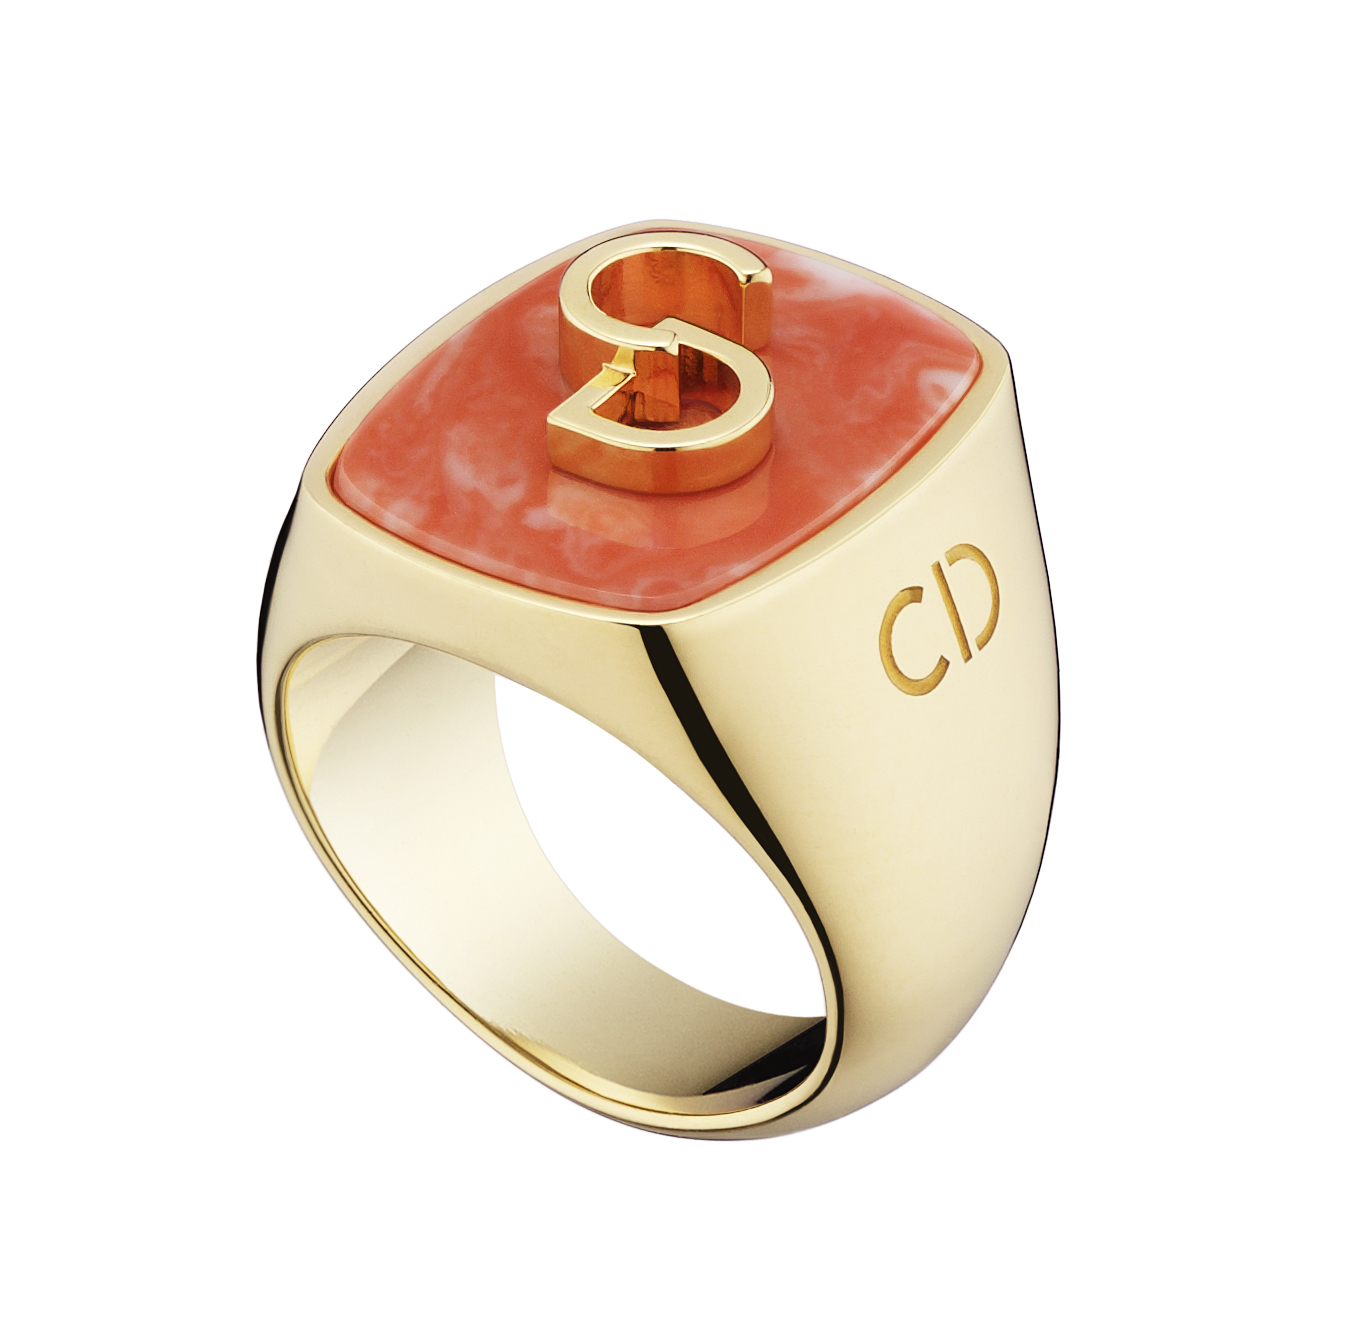 Lucky-Dior-CD-signature-pattern-ring-in-metal-with-gold-finish-and-coral-paste